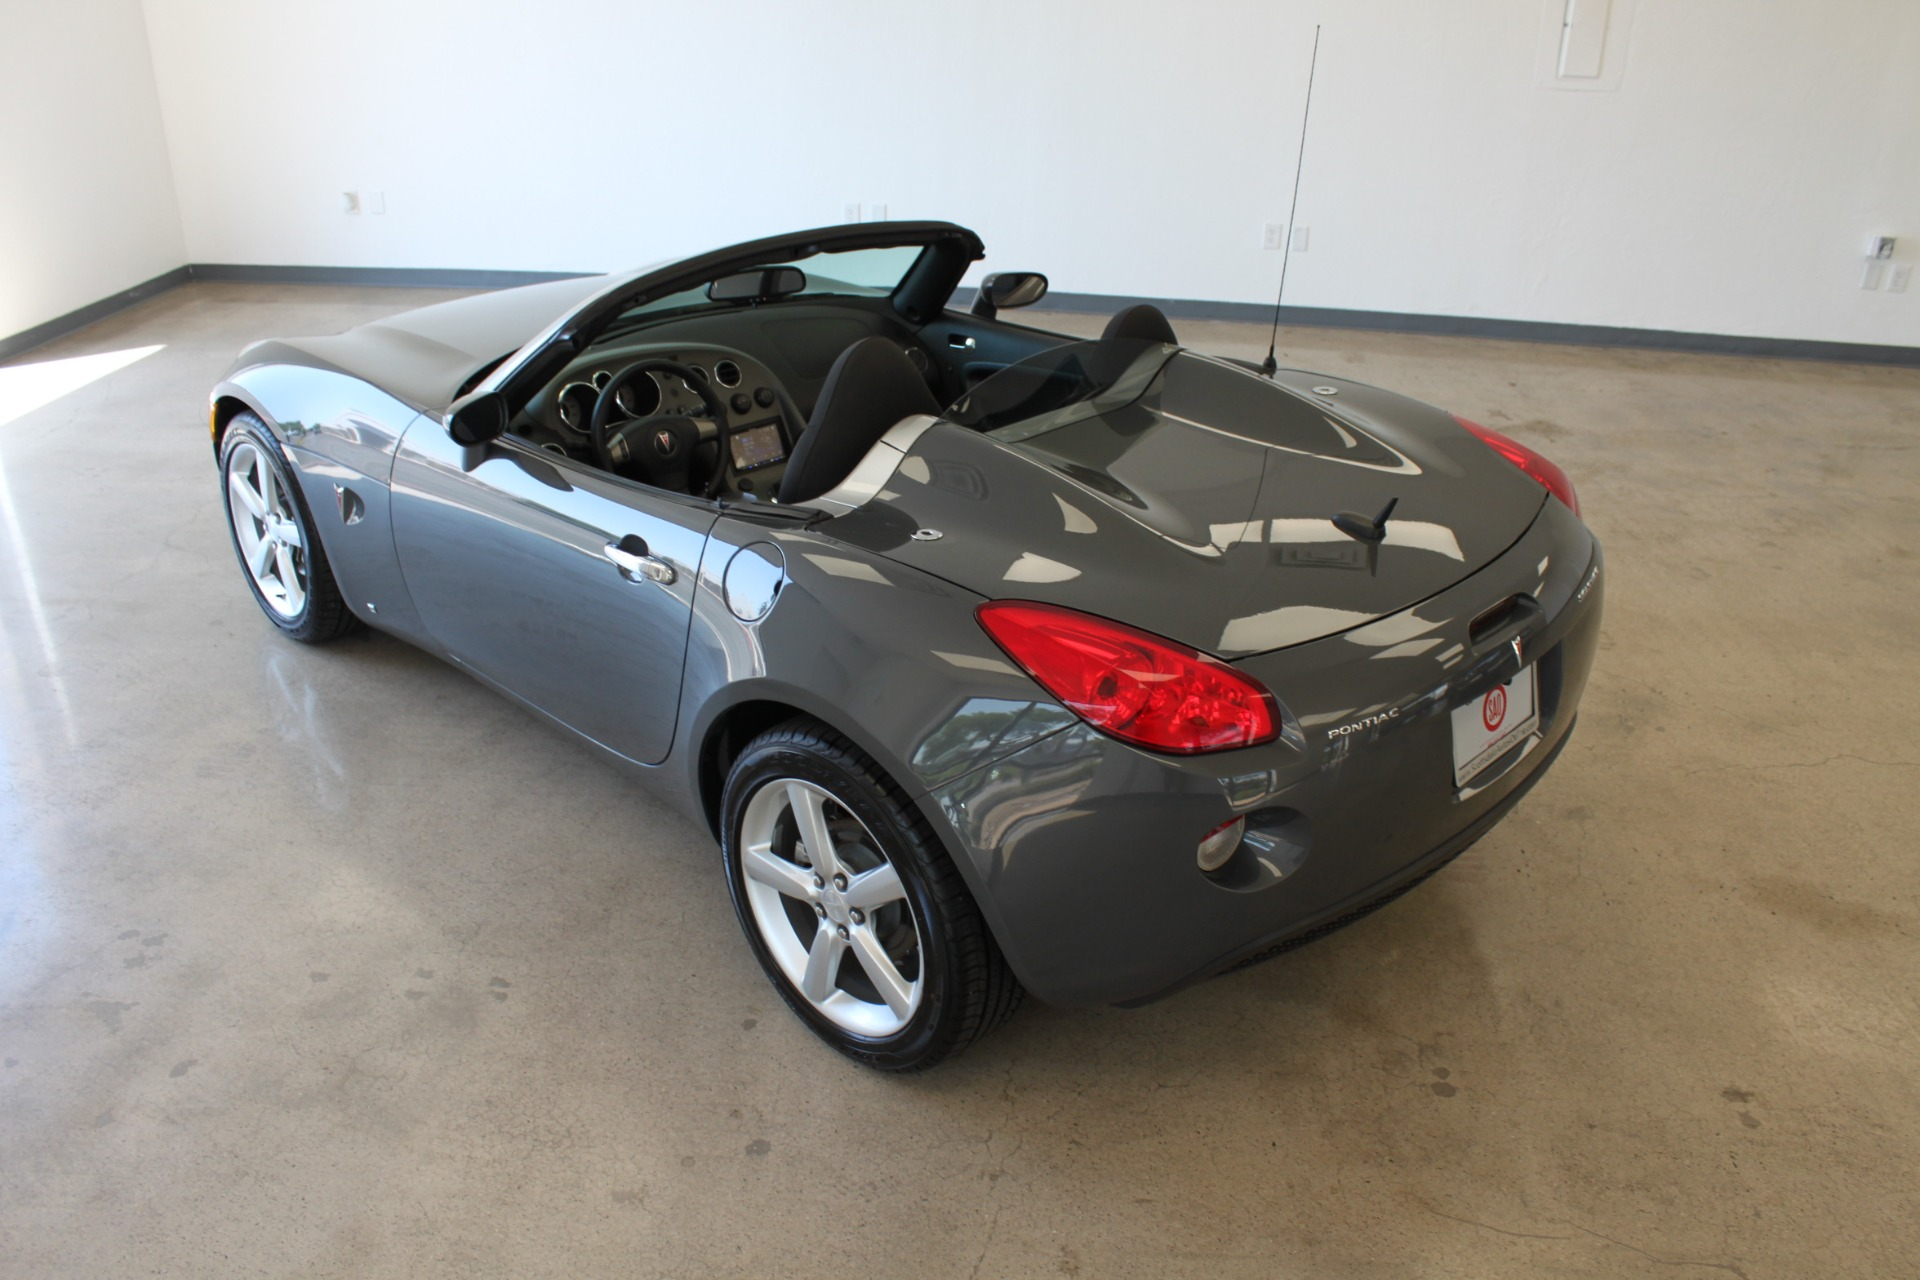 Used-2009-Pontiac-Solstice-Convertible-Ford